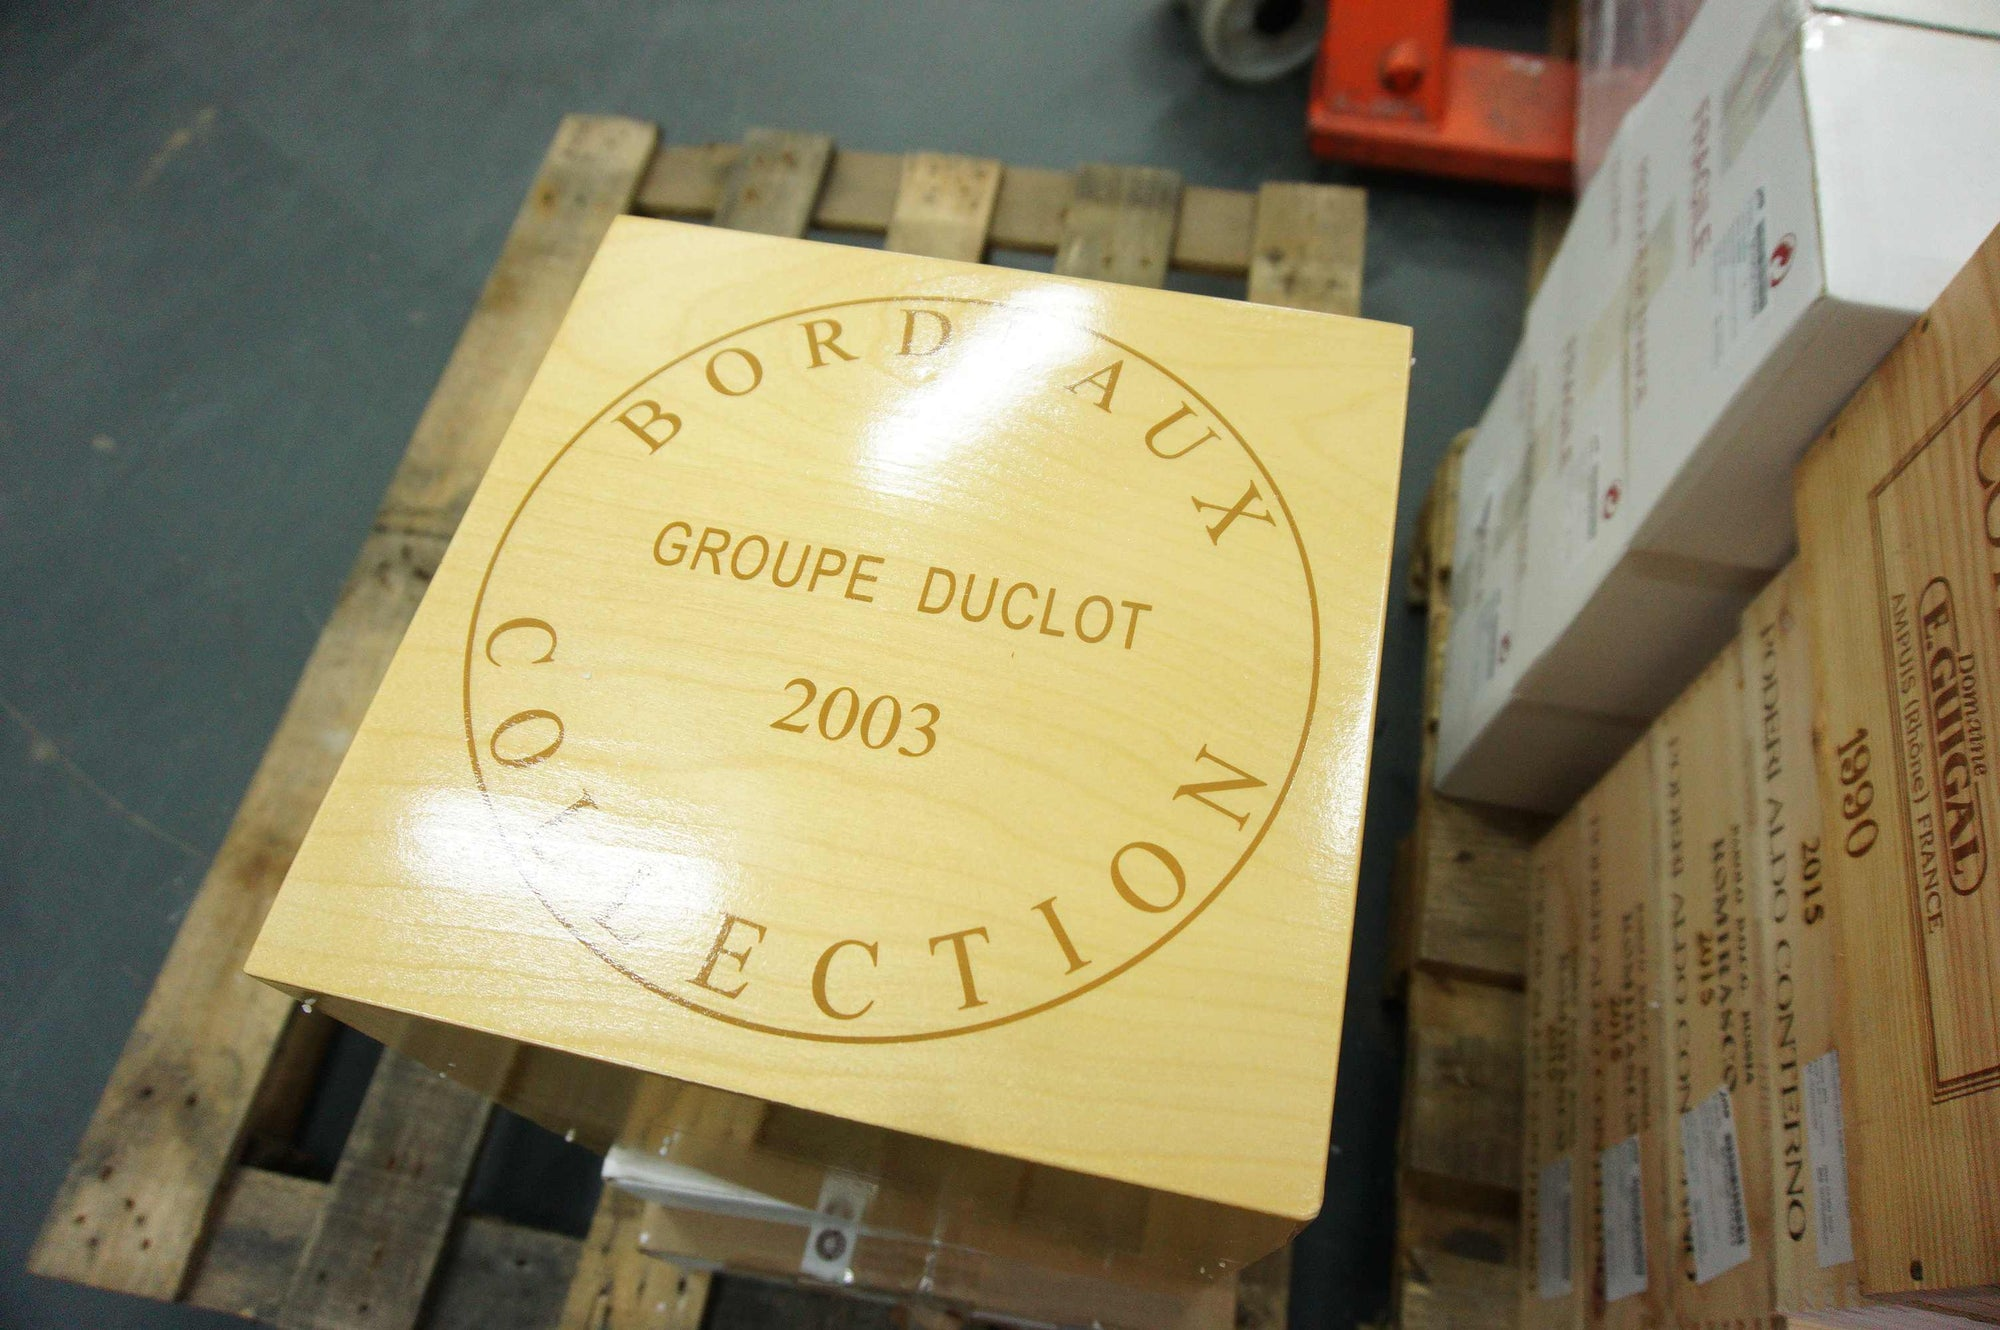 Duclot Collection (9 bottles) OWC 2003